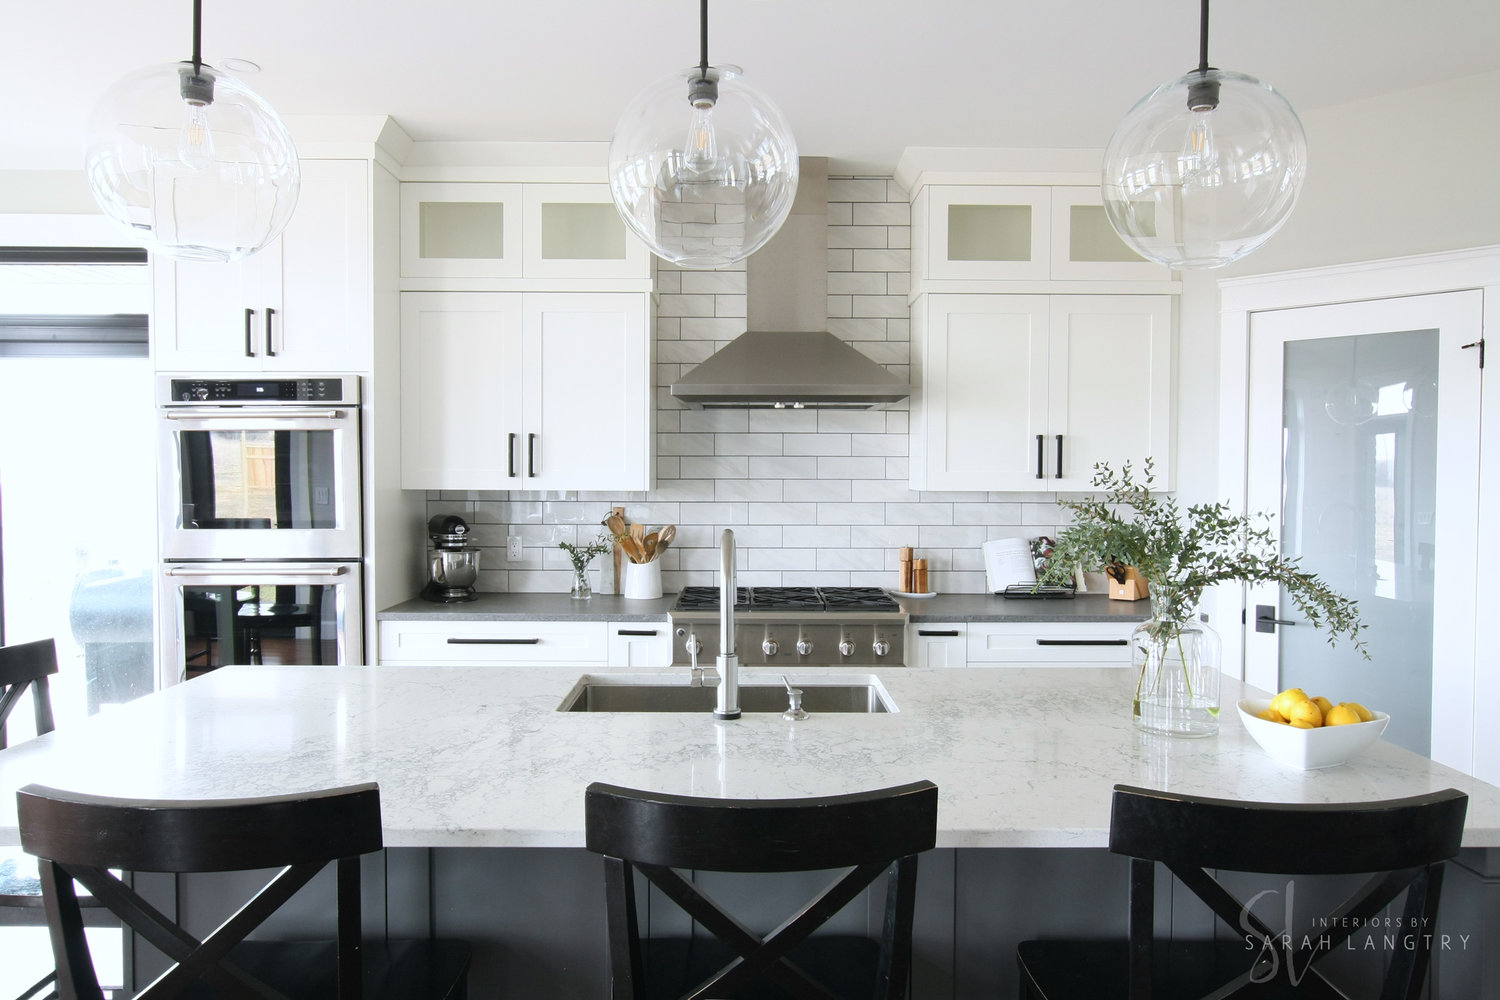 6 Design Tips To Help You Plan Your Dream Kitchen Interiors By Sarah Langtry